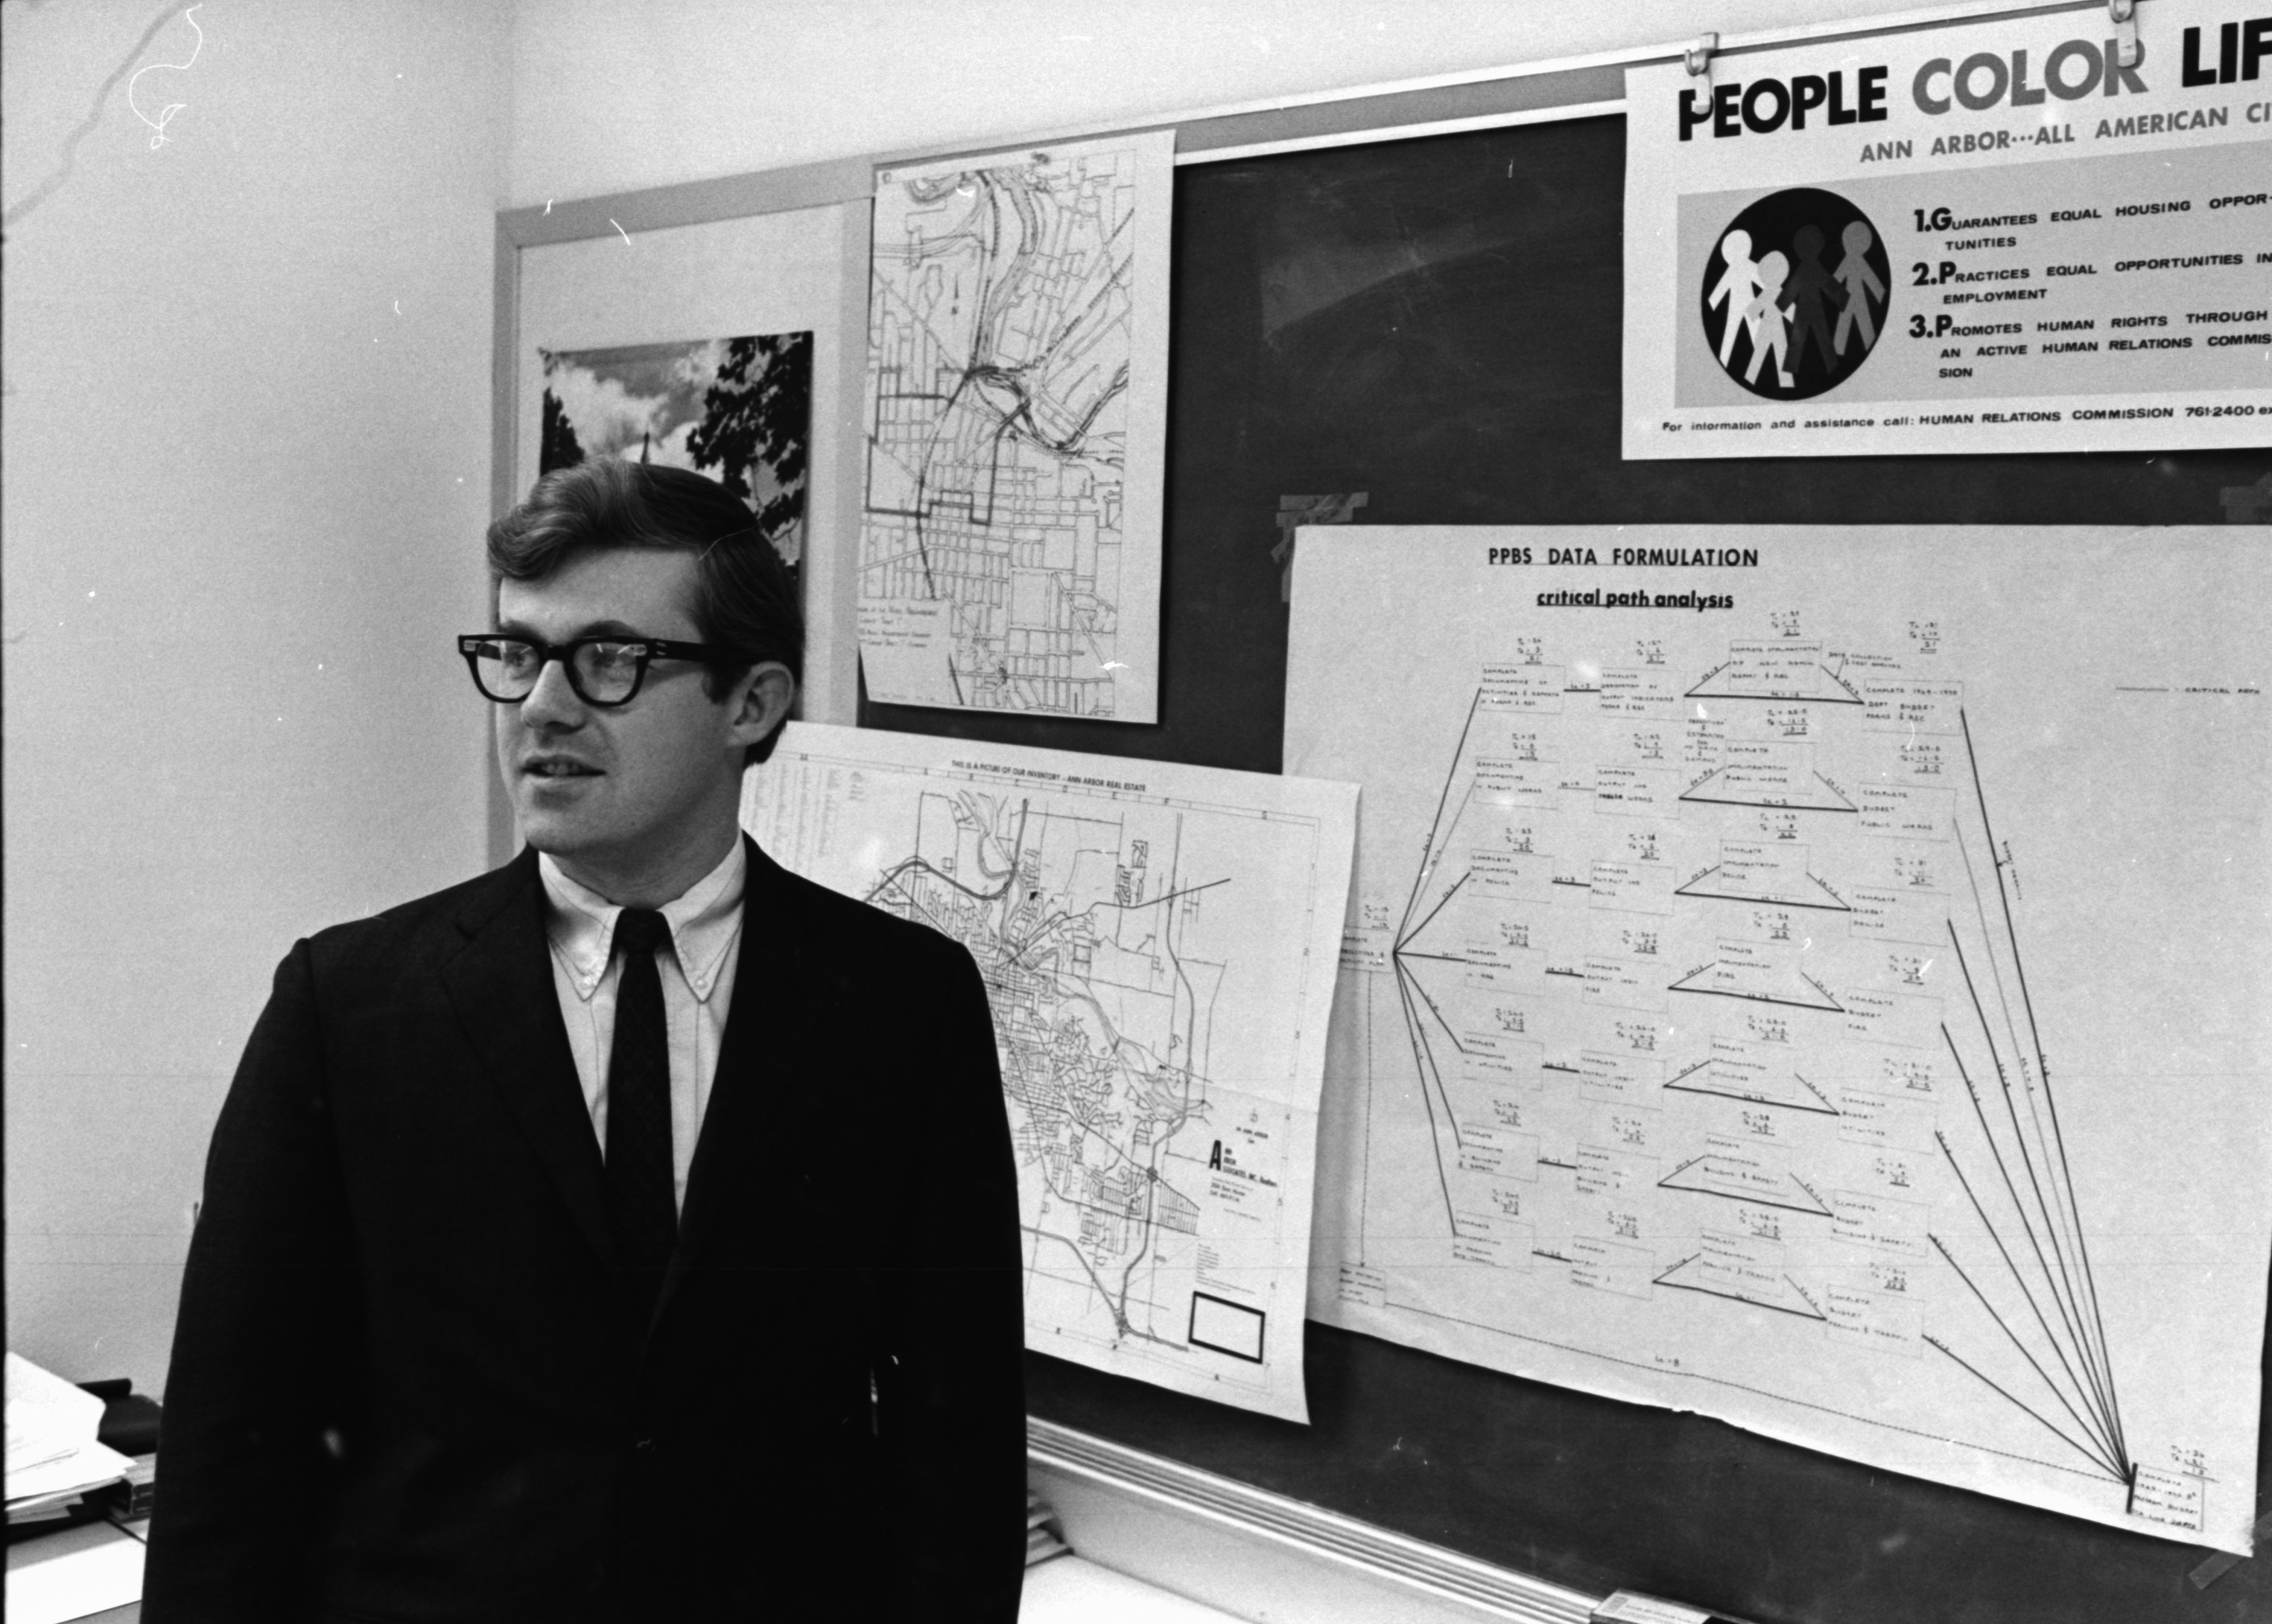 Dr. Barton R. Burkhalter Inside The City Planning Office, February 1969 image